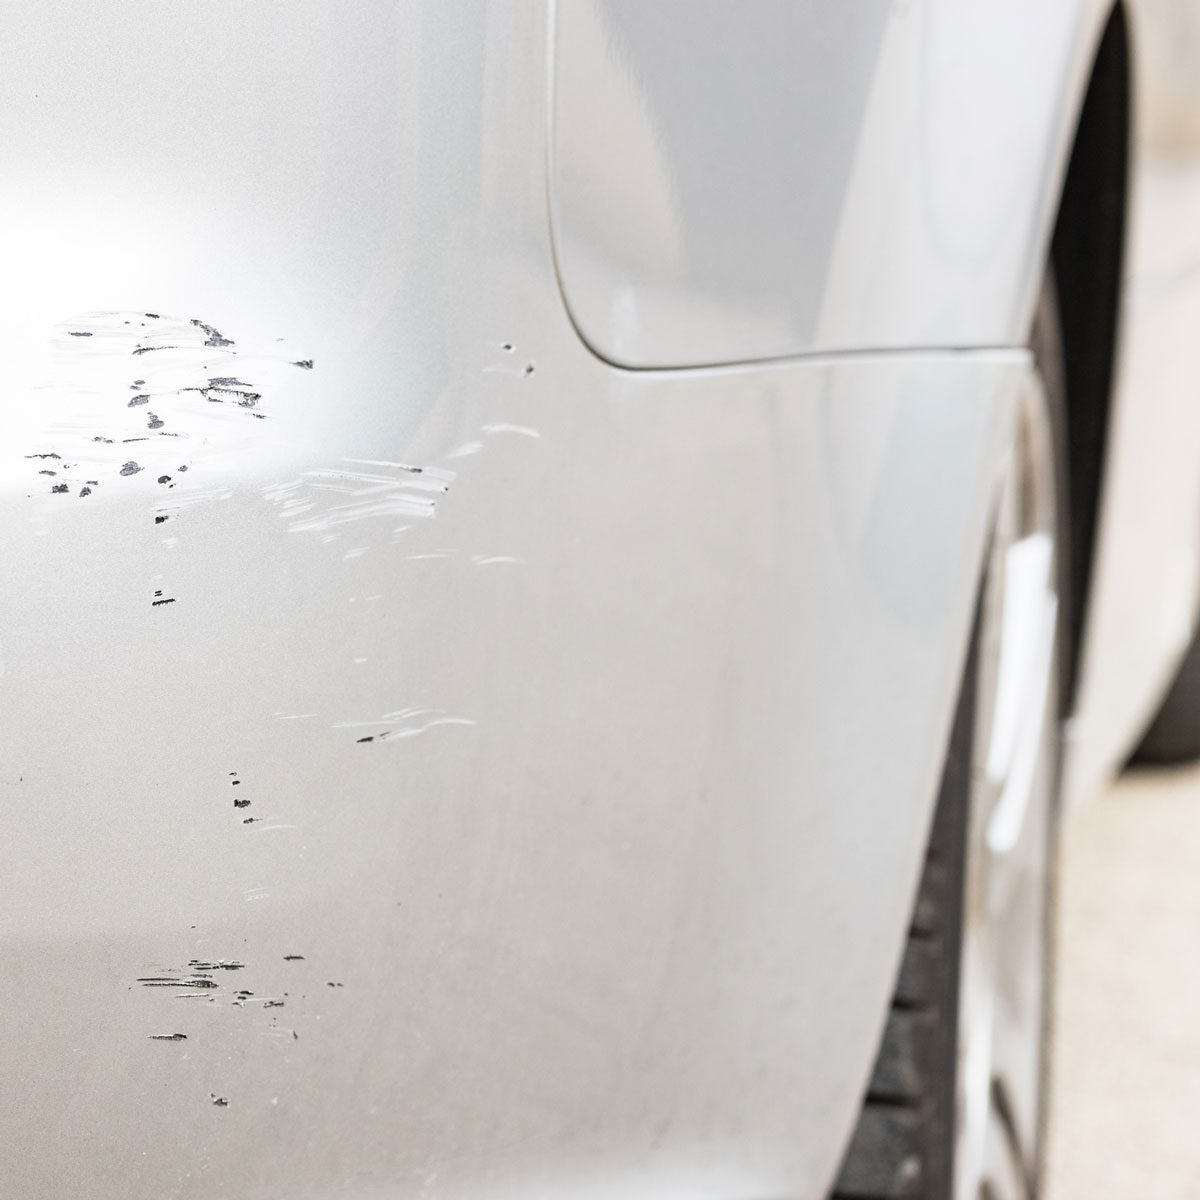 Chipped paint on a white car